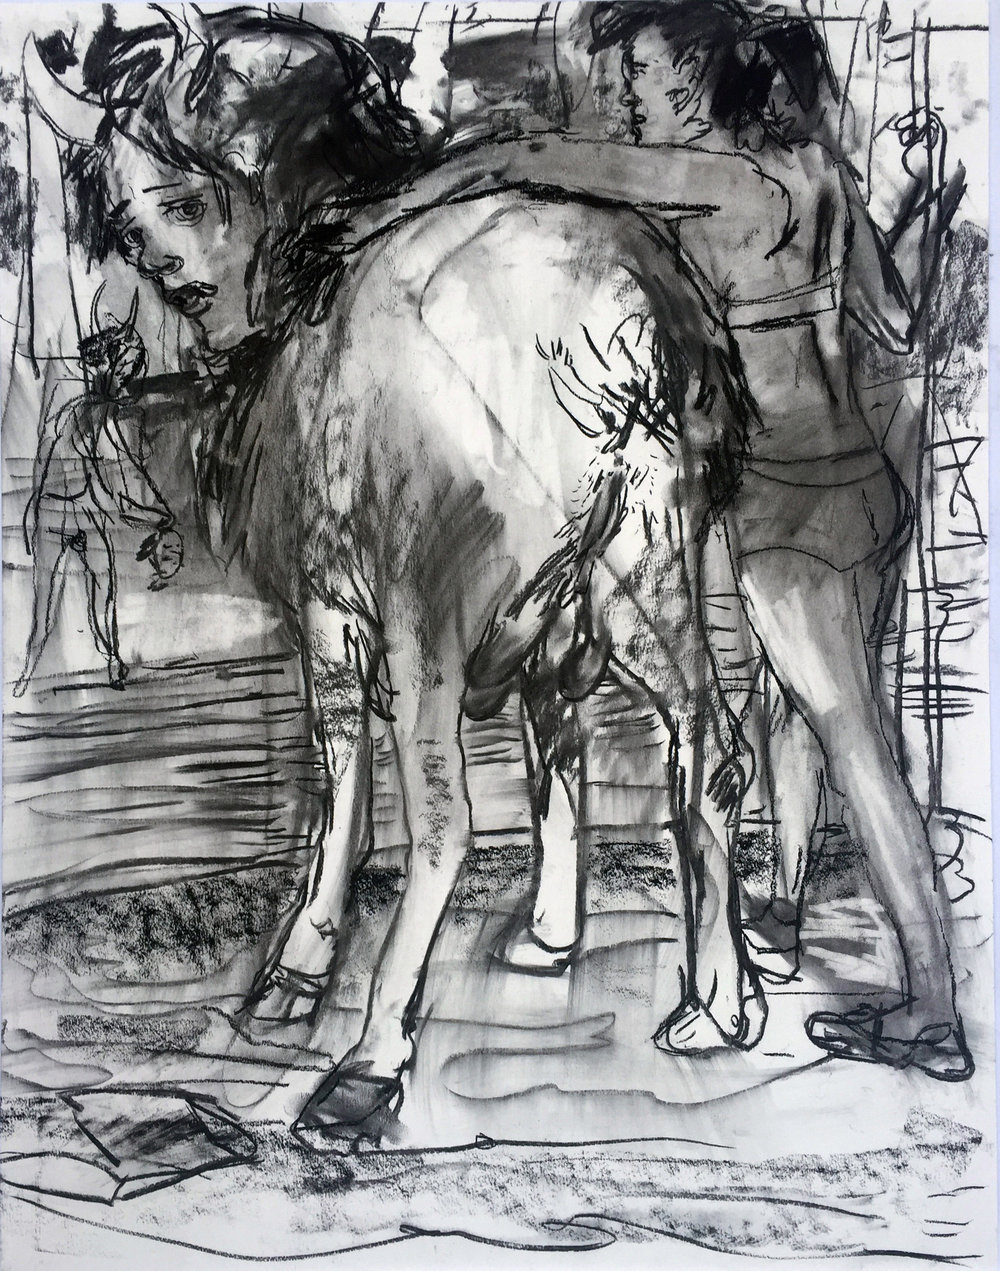 Horny Goatlady 18 by 24 inches charcoal on paper 2017.jpg